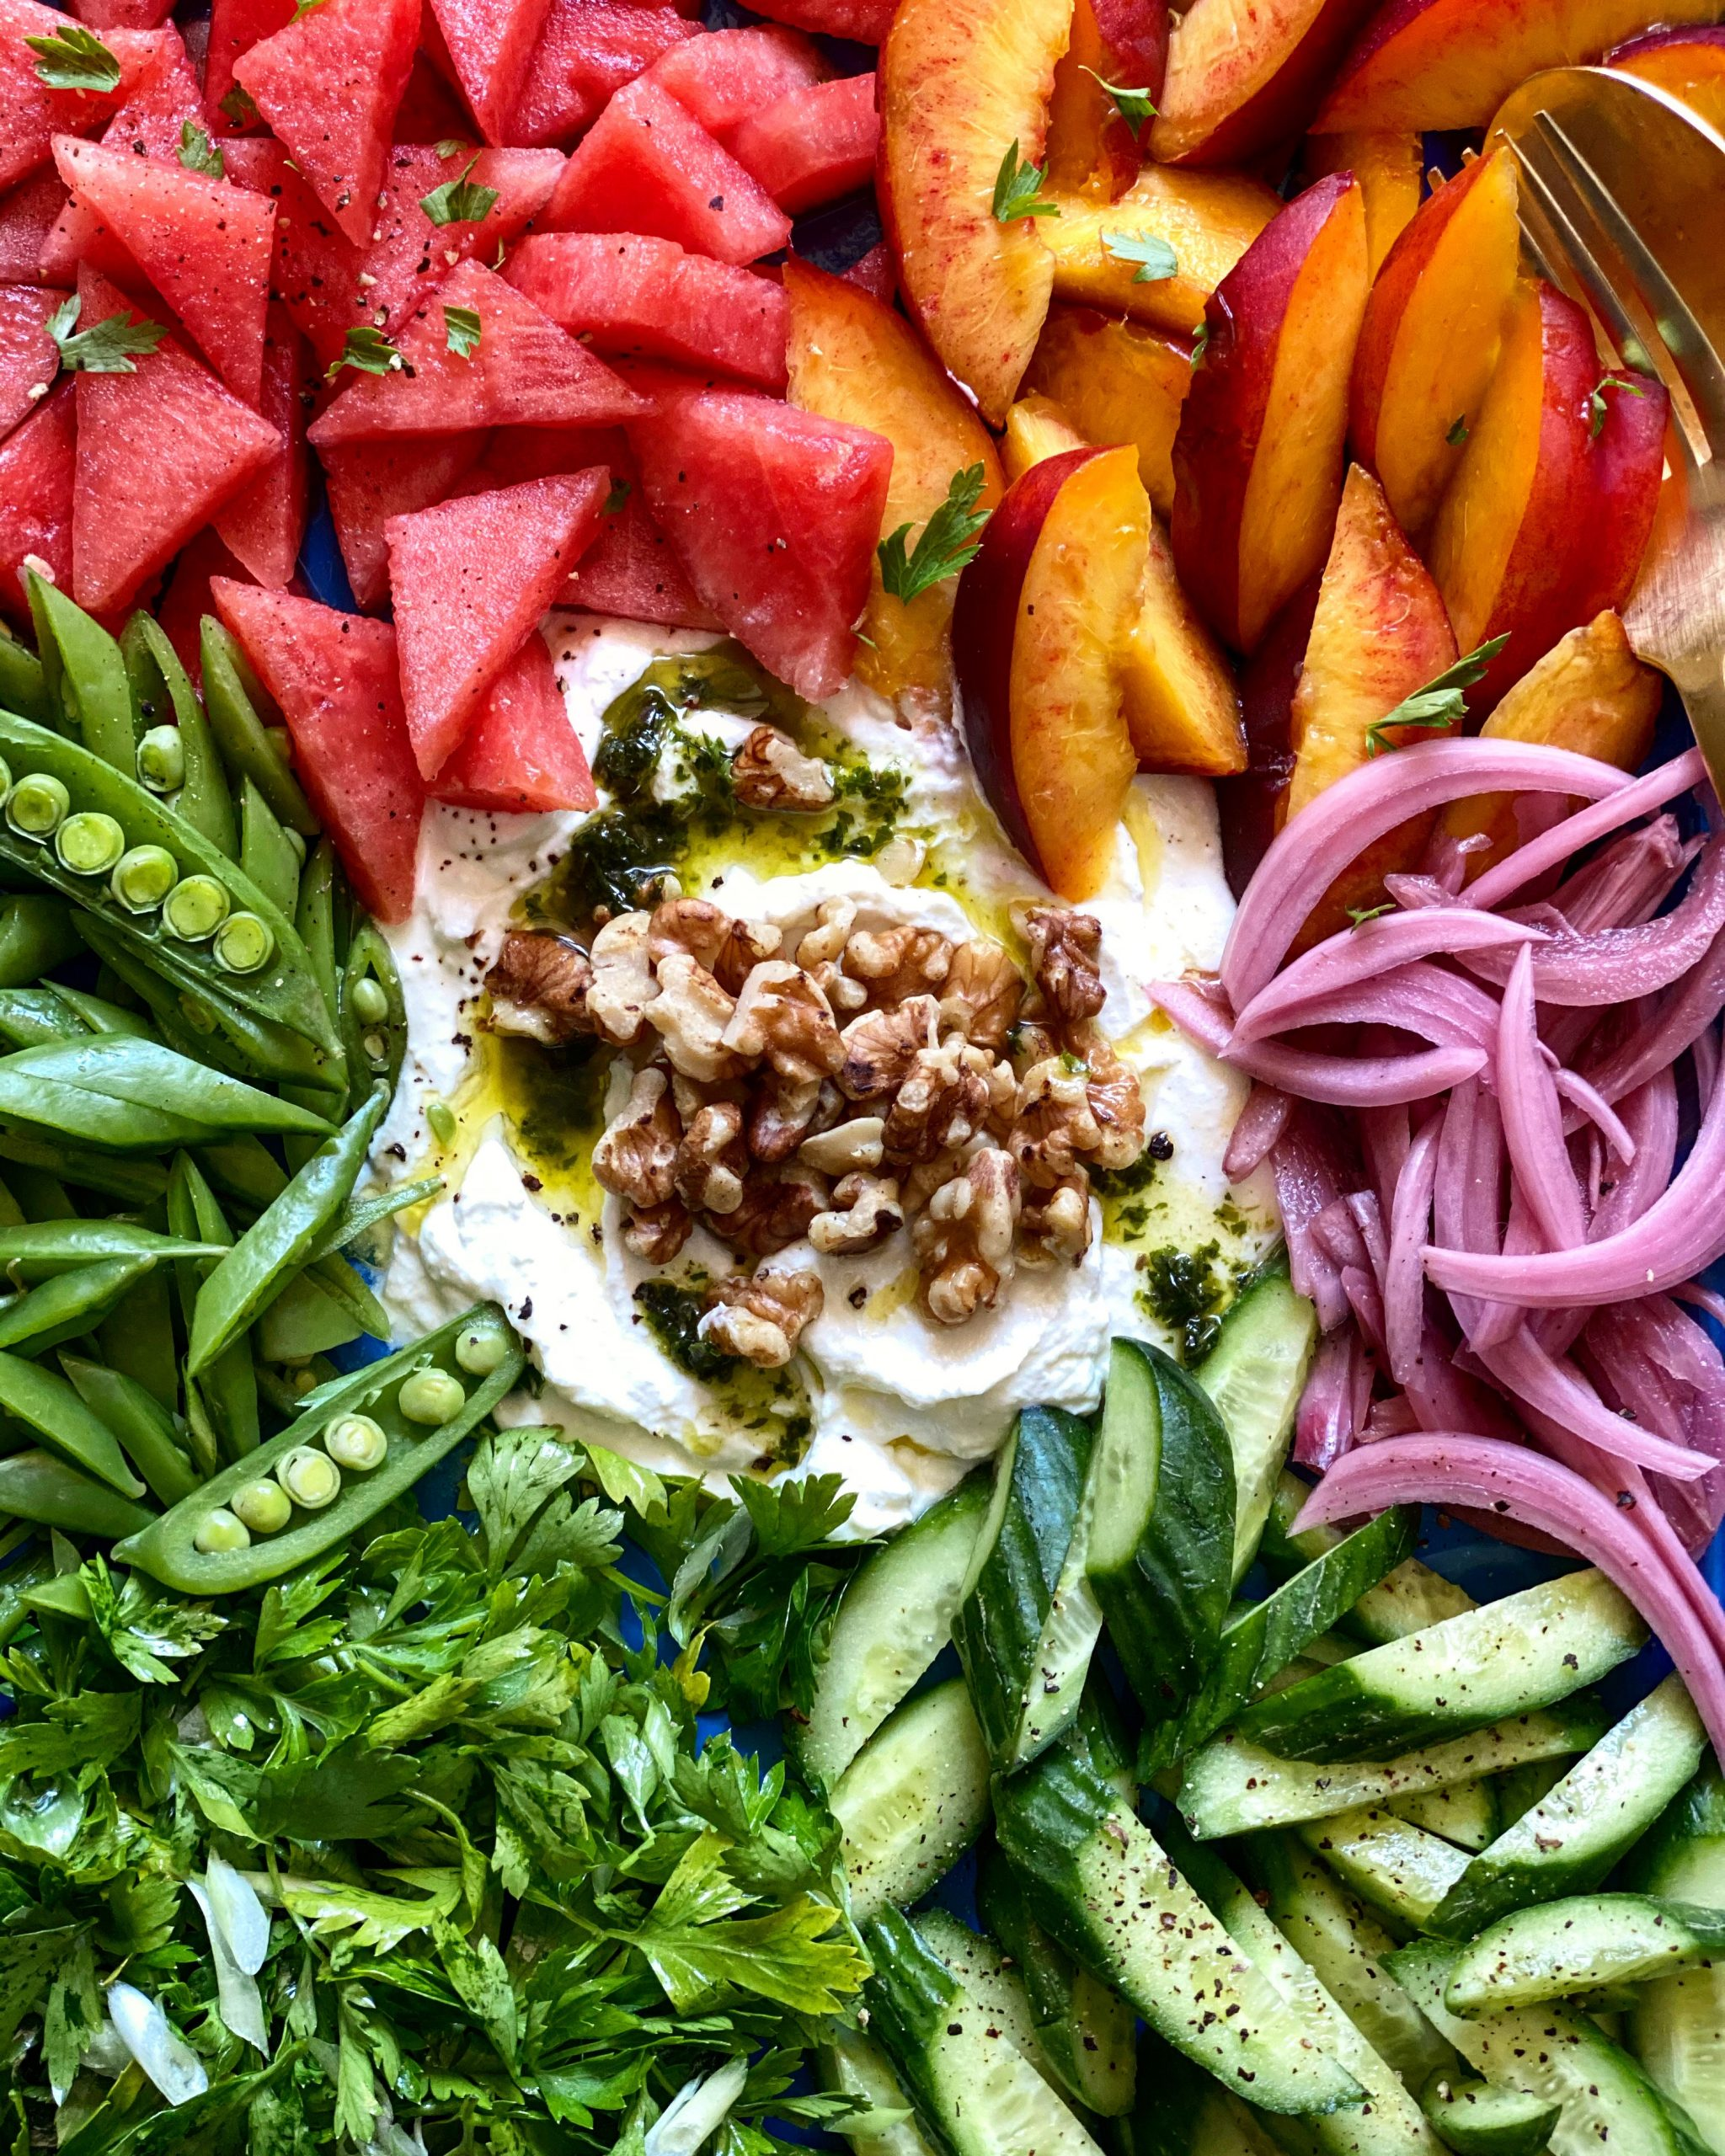 whipped feta dip with fruit, vegetables, and parsley salad